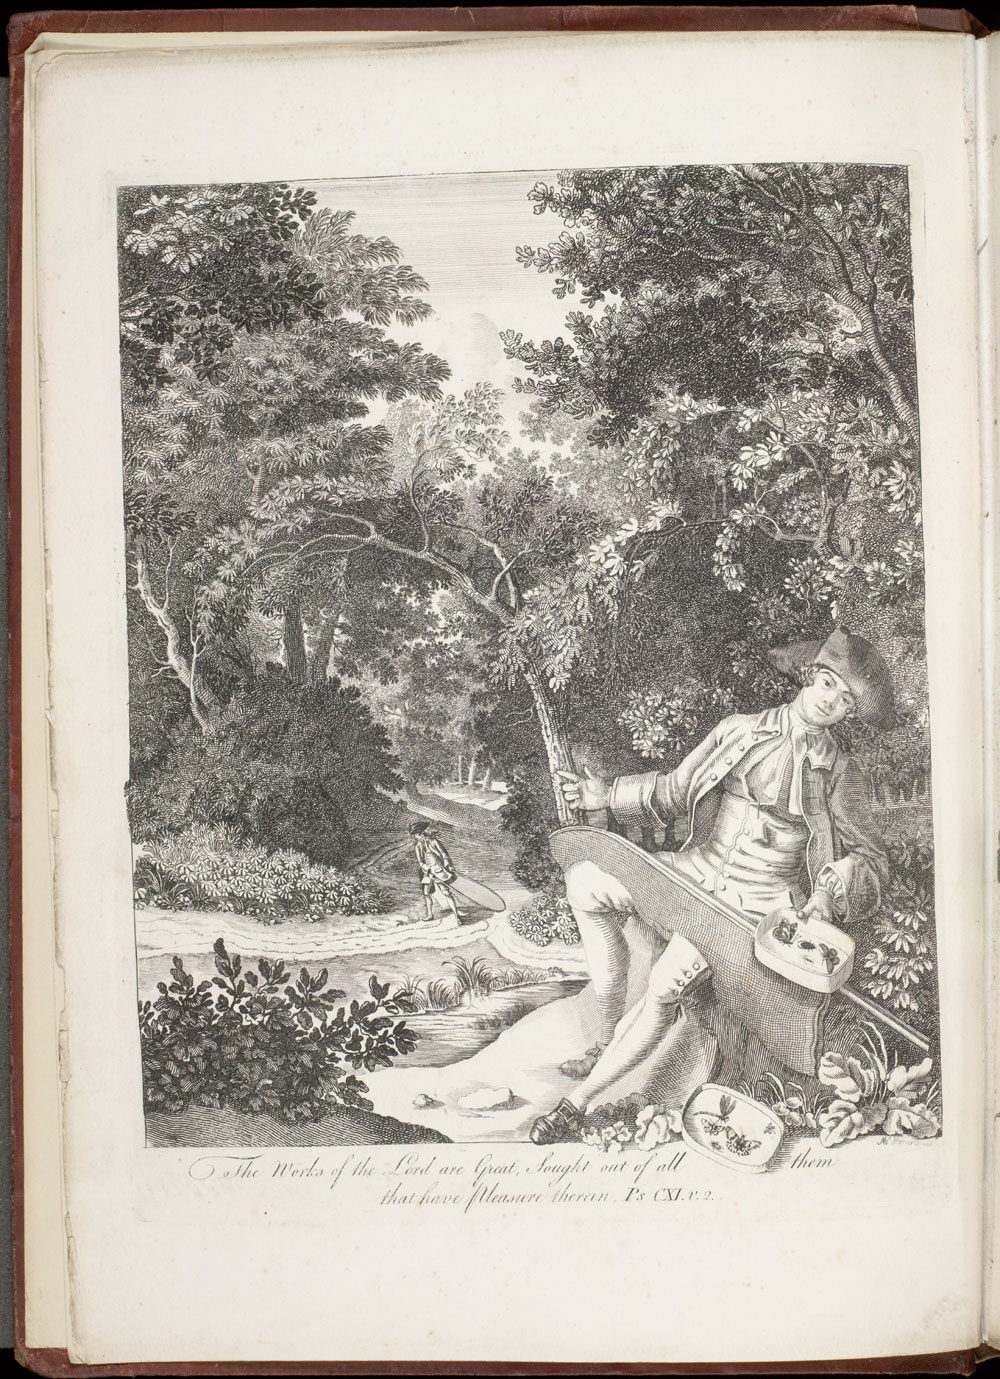 Frontispiece: Butterfly collectors,  Image number:SIL21-18-001